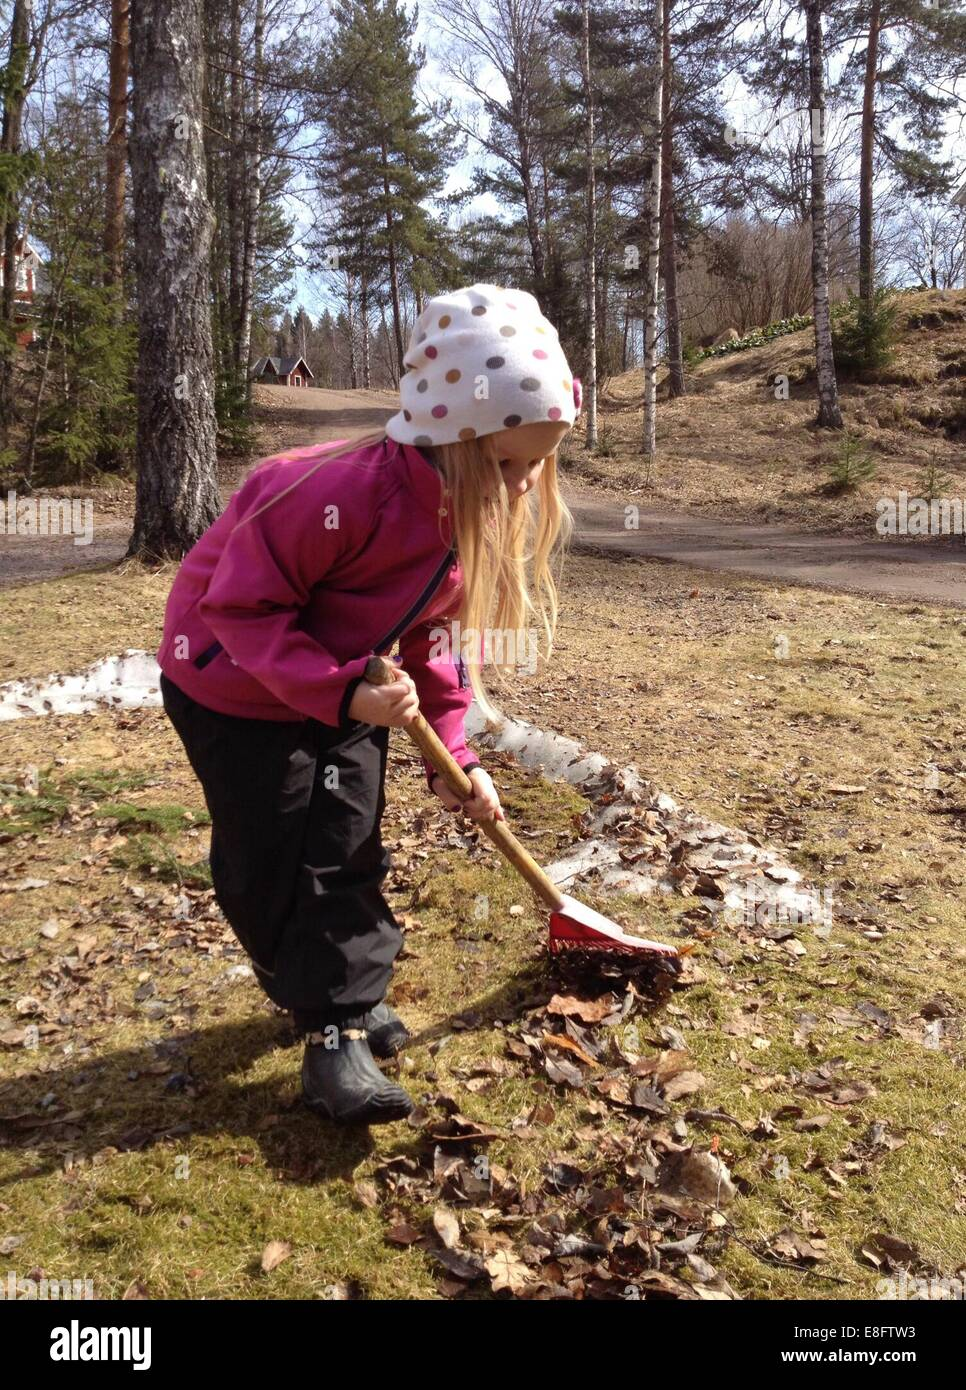 Sweden, Girl (6-7 years) raking leaves in garden - Stock Image